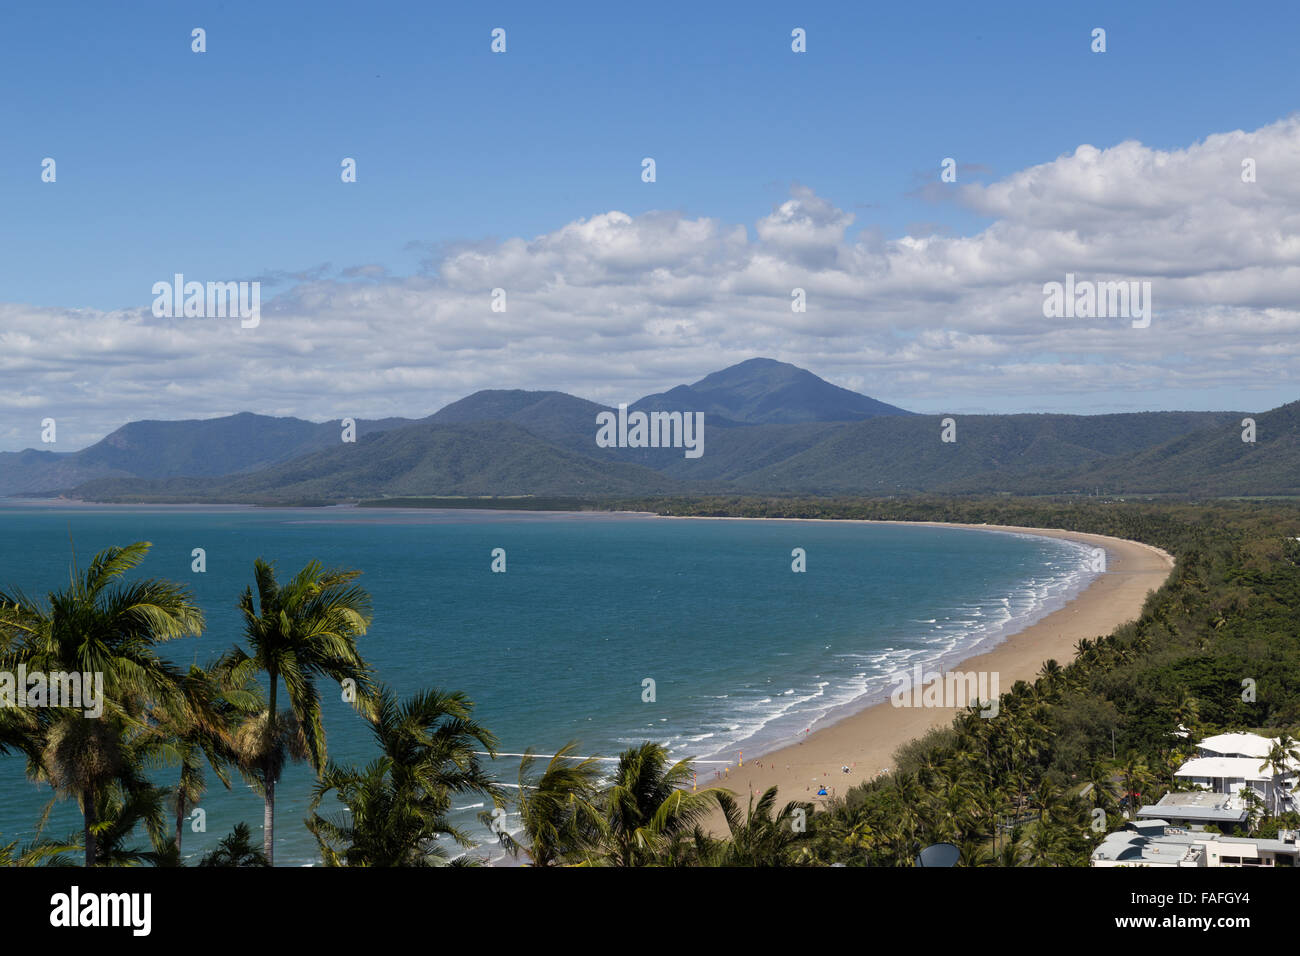 View of the beach in Port Douglas from Trinity Bay lookout in Queensland, Australia. - Stock Image